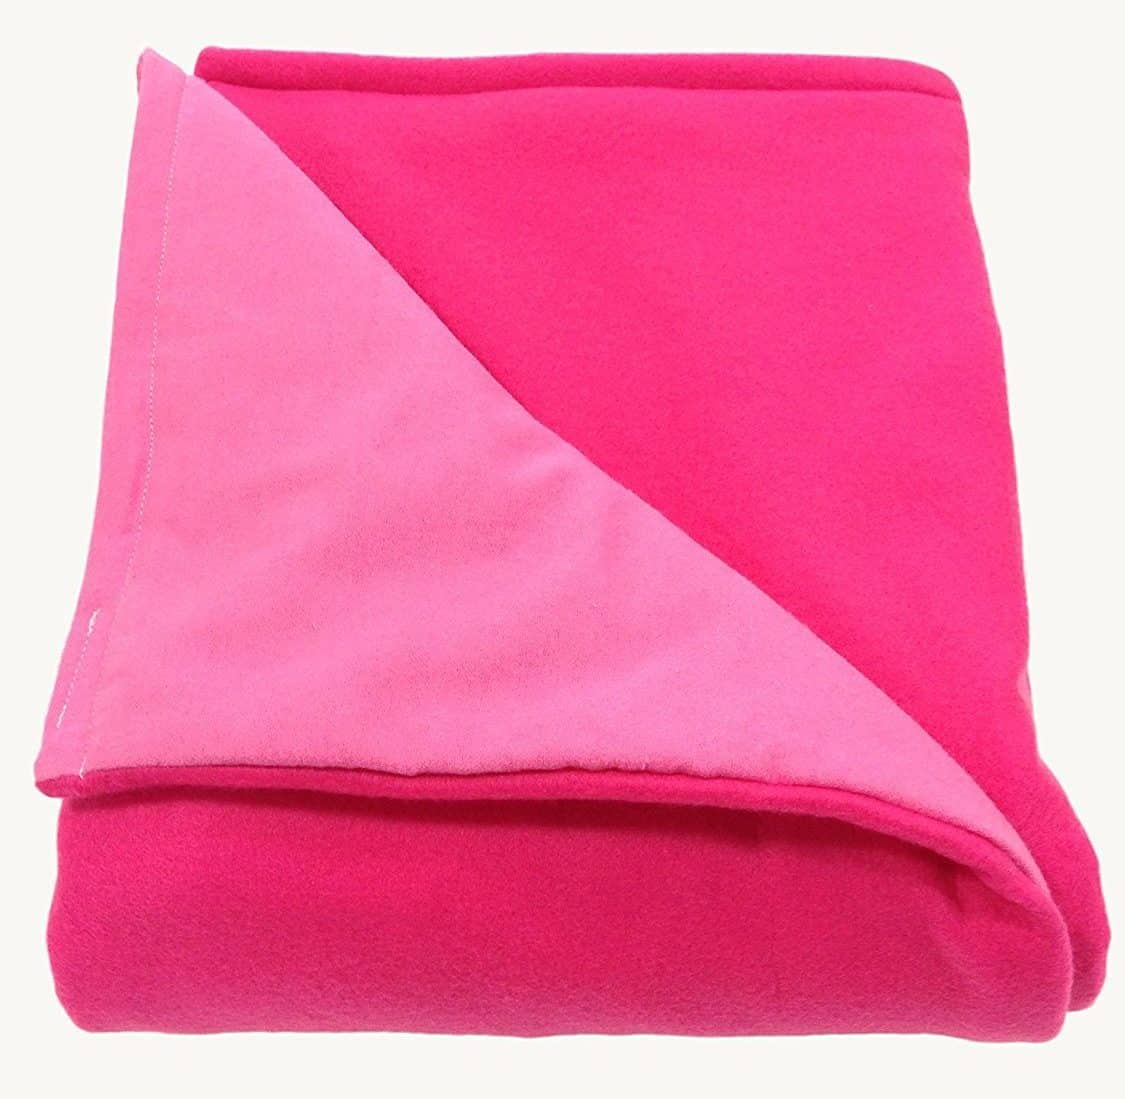 Sensory Goods Weighted Blanket - Weighted Blanket